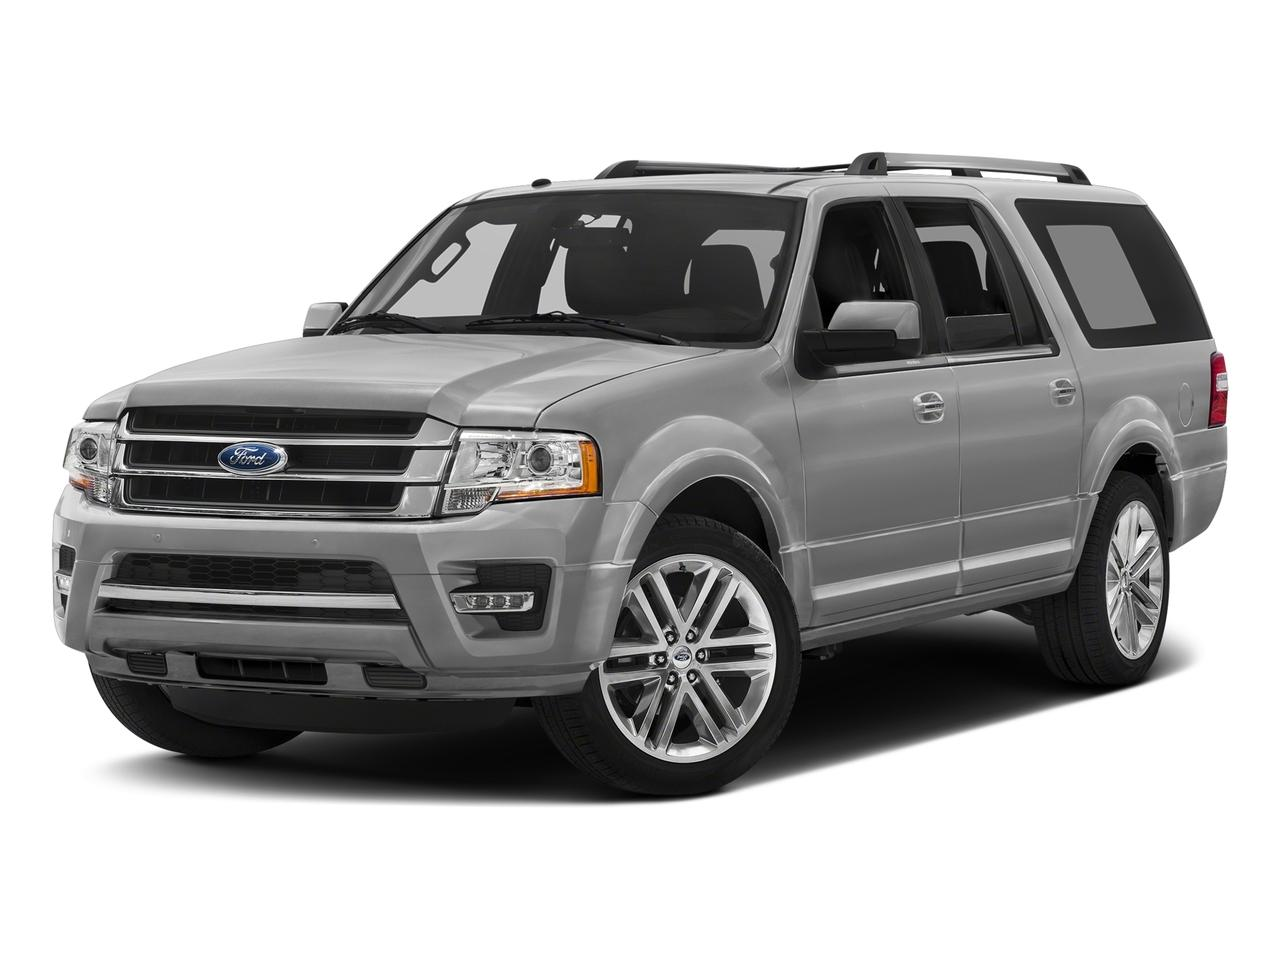 2016 Ford Expedition EL Vehicle Photo in Terryville, CT 06786